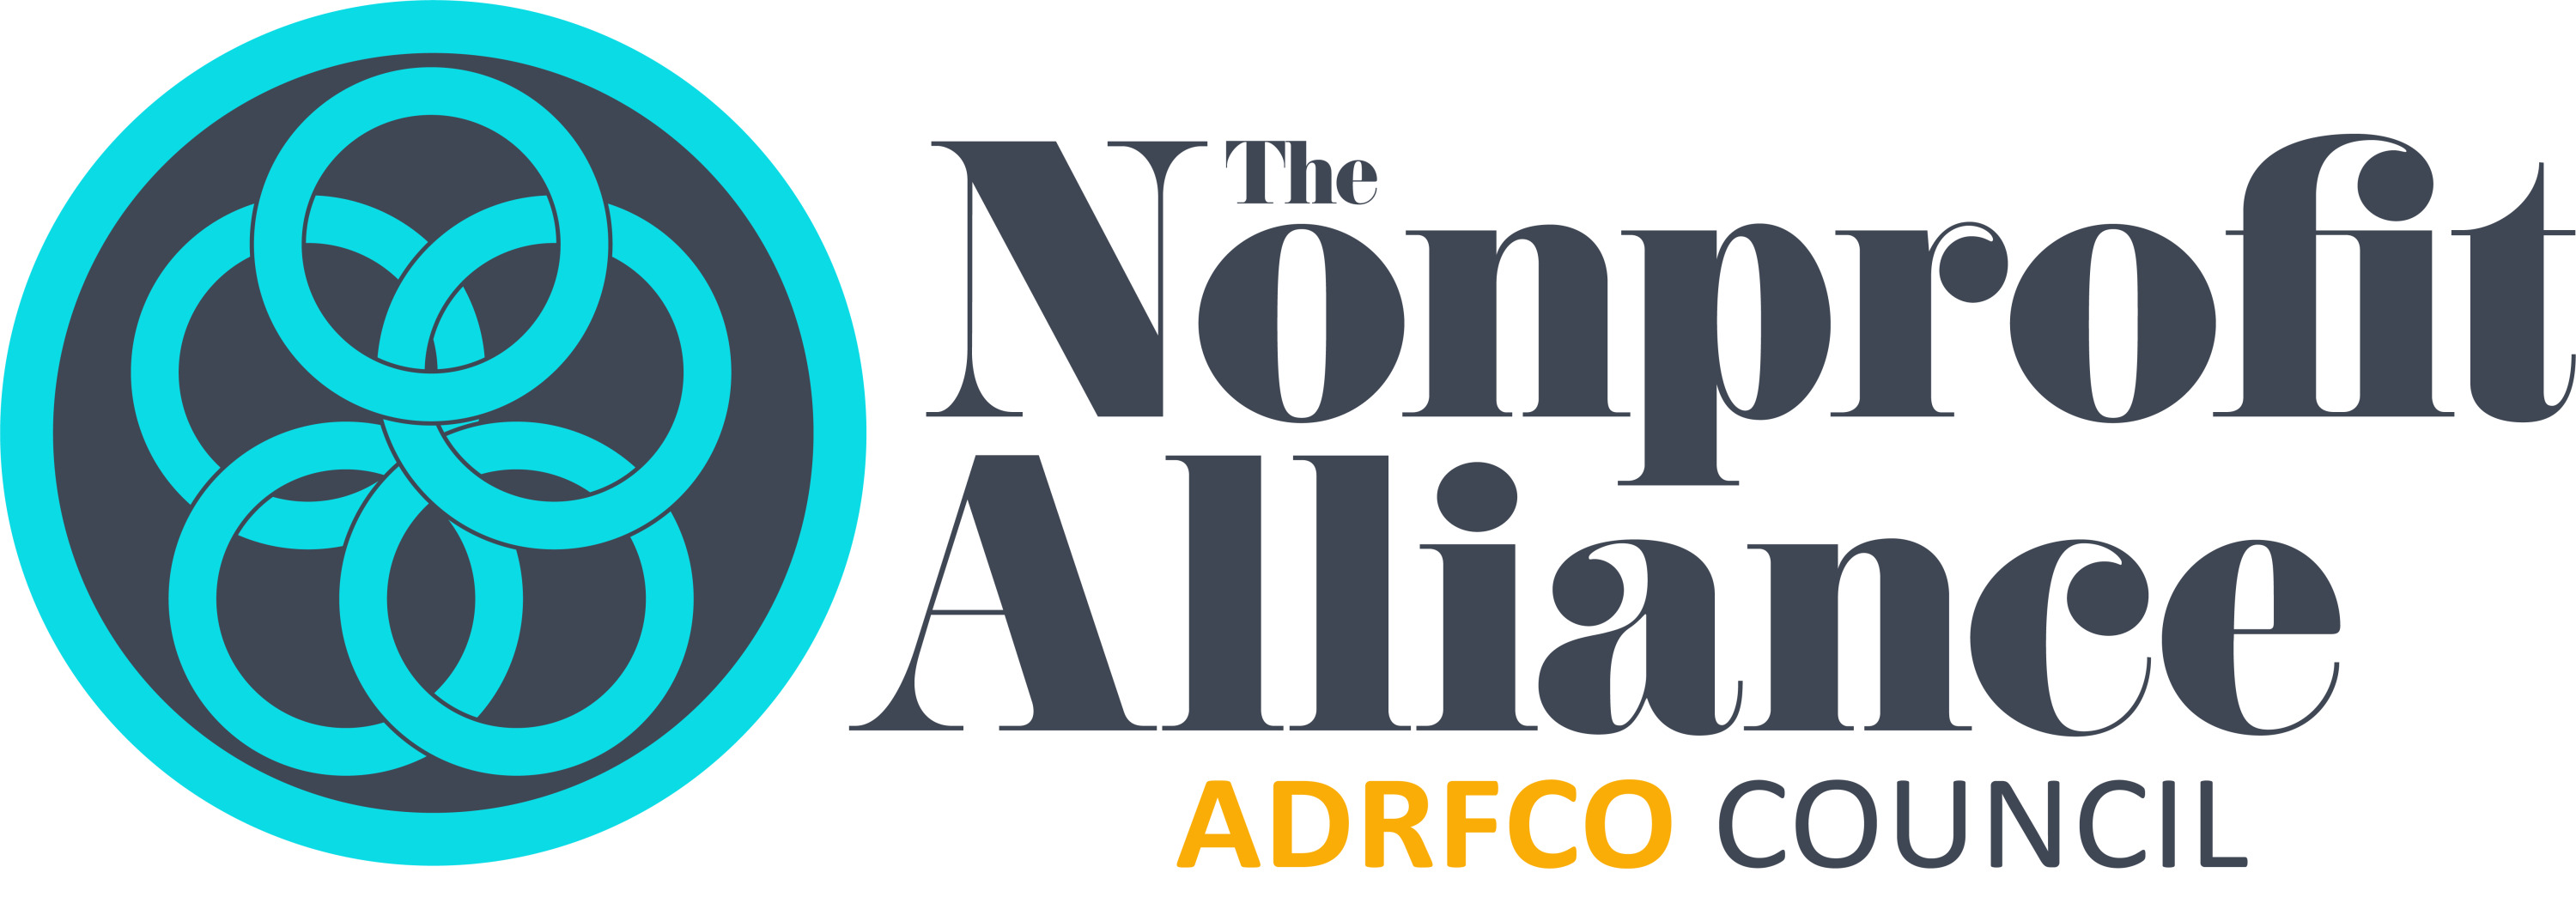 The Nonprofit Alliance ADRFCO Council logo